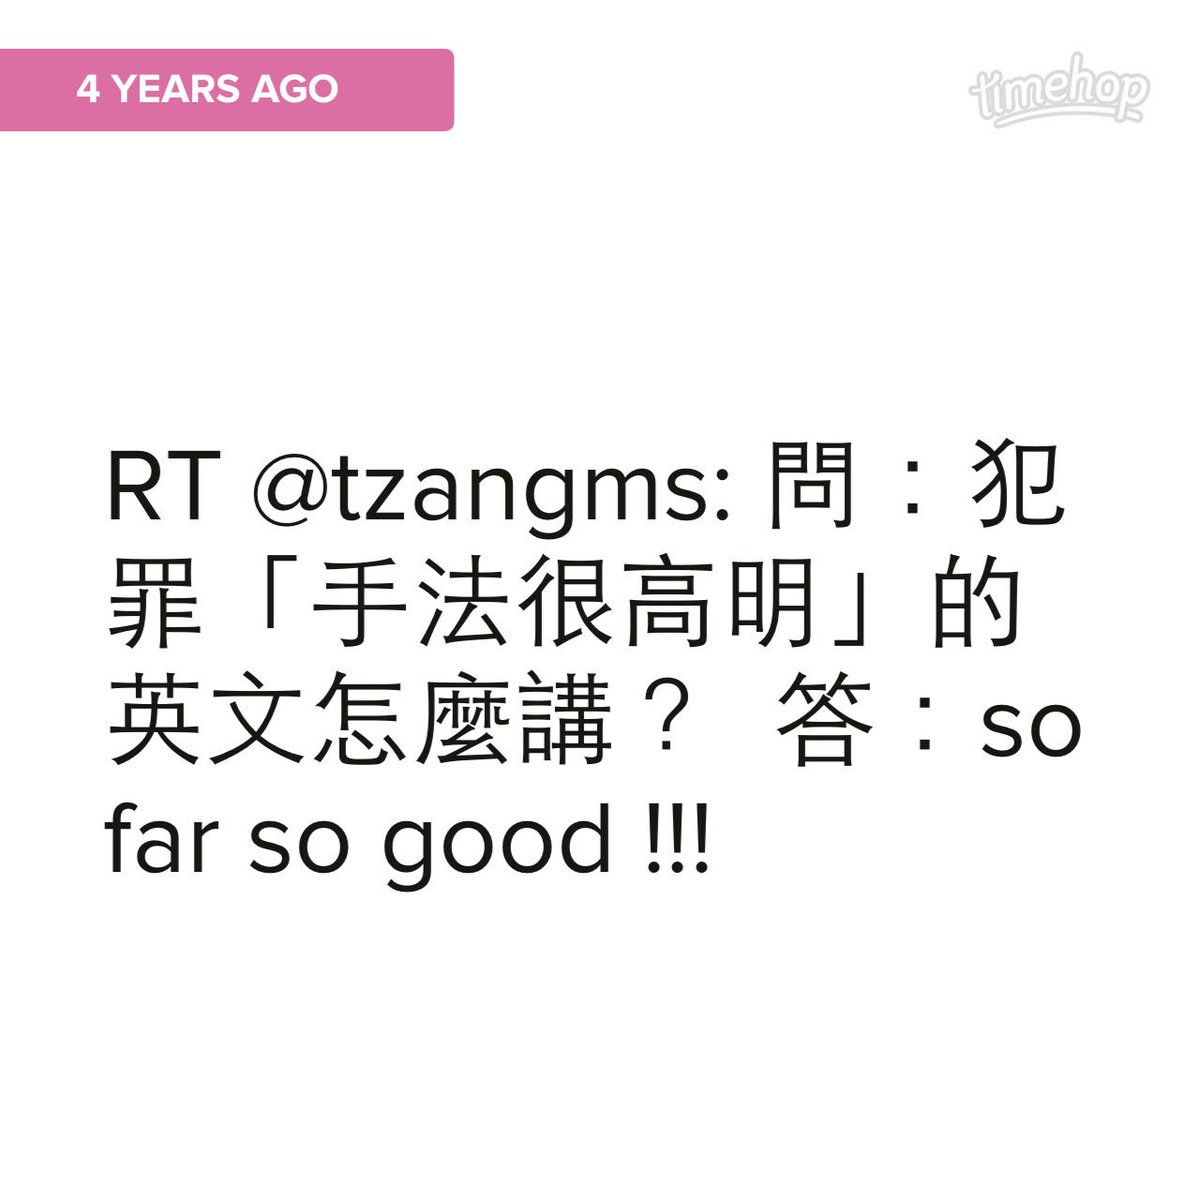 Look at what was in my @timehop! @tzangms http://t.co/b8PNEXuPkX http://t.co/SIz2vk8ABg